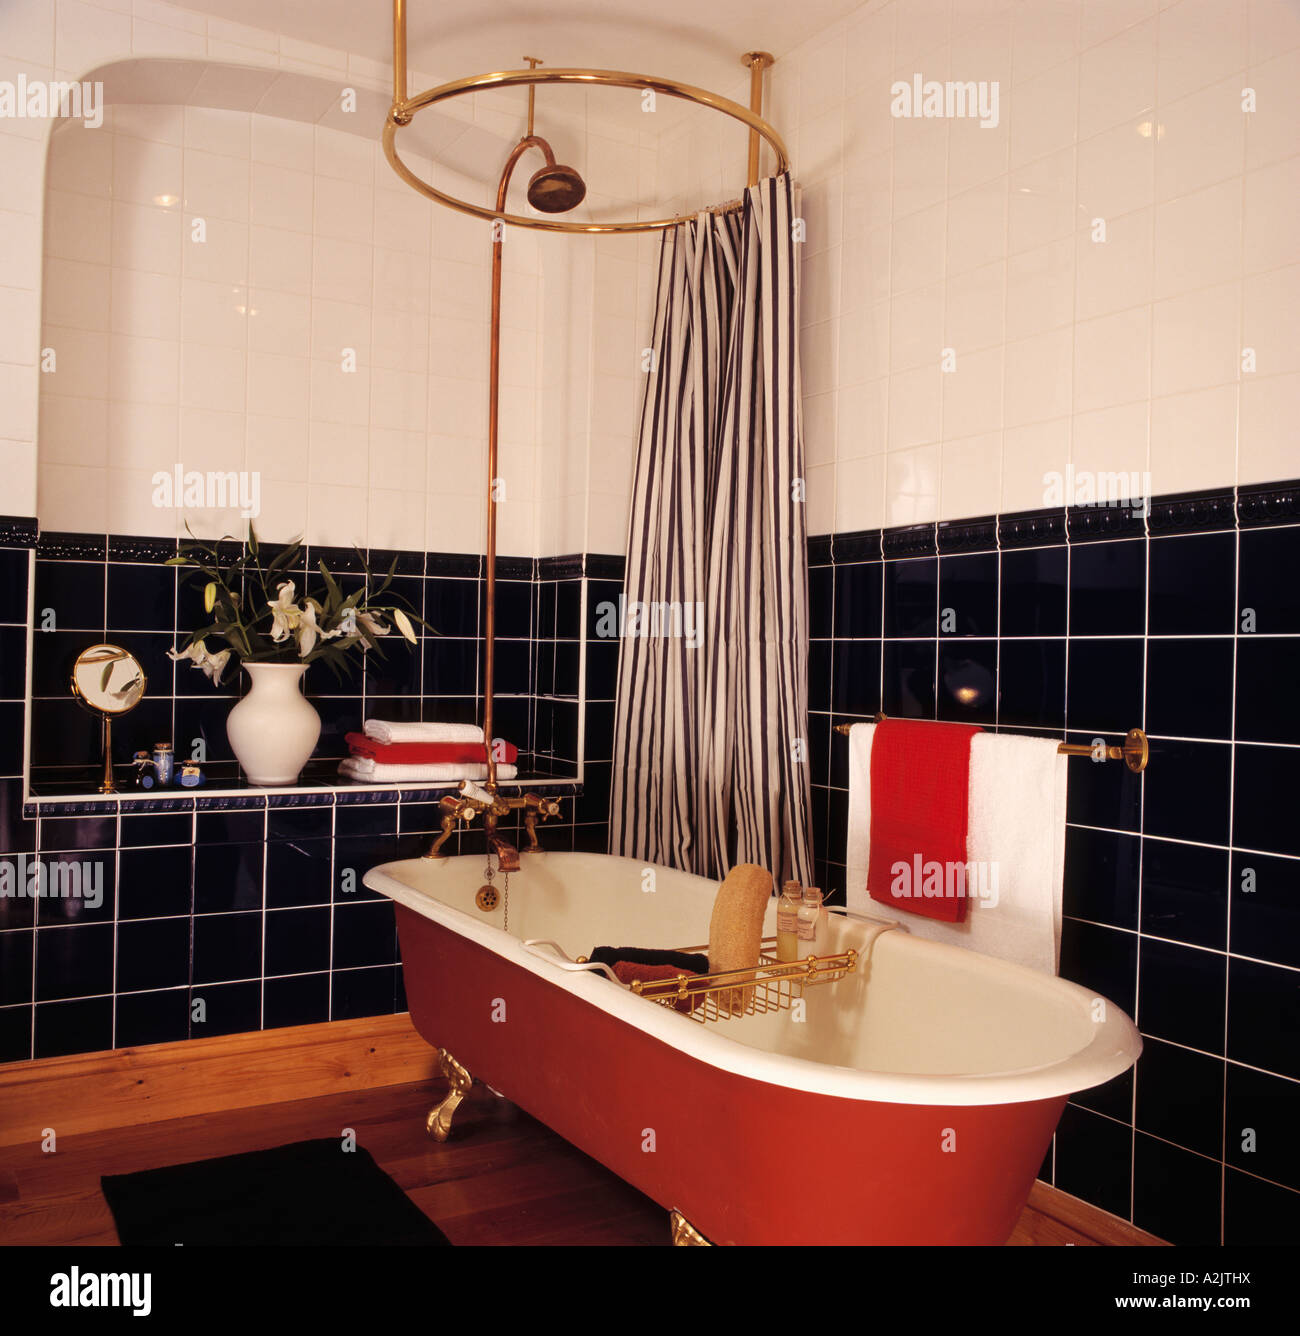 Striped Shower Curtain On Circular Rail Above Red Freestanding Bath